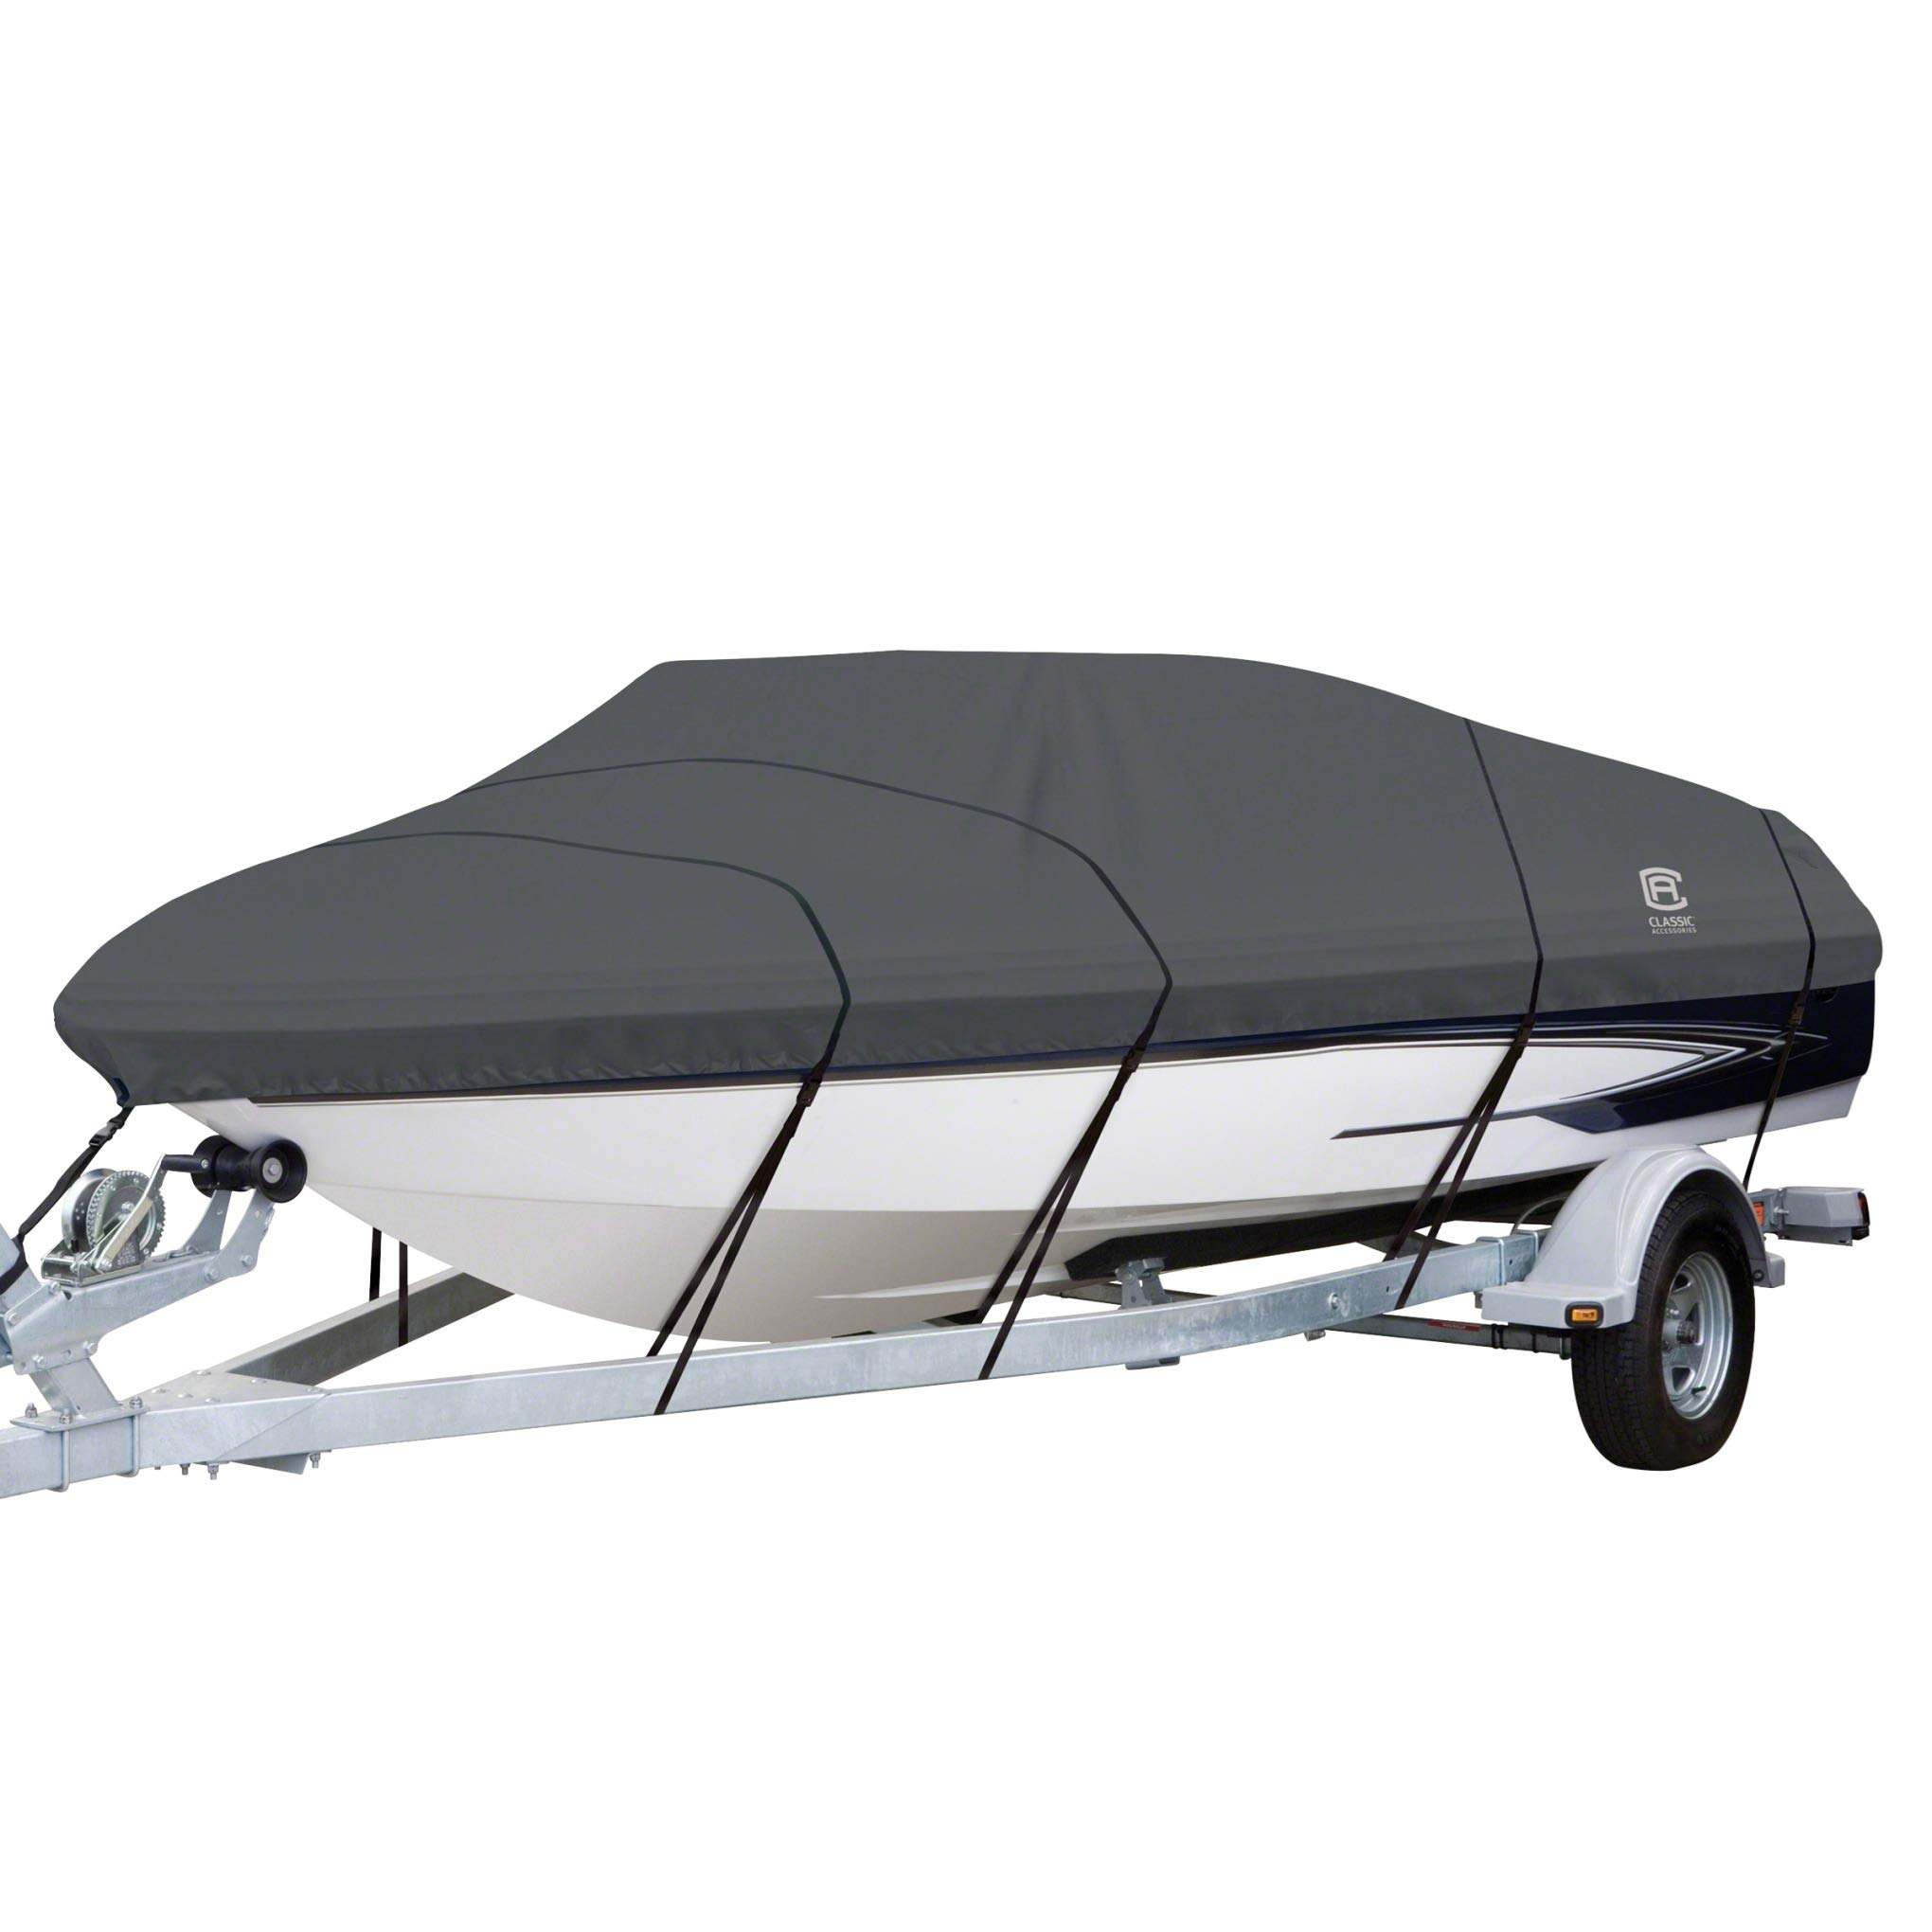 Classic Accessories StormPro Heavy Duty Boat Cover With Support Pole For V-Hull Runabouts, For 17' - 19' L Up to 102'' W by Classic Accessories